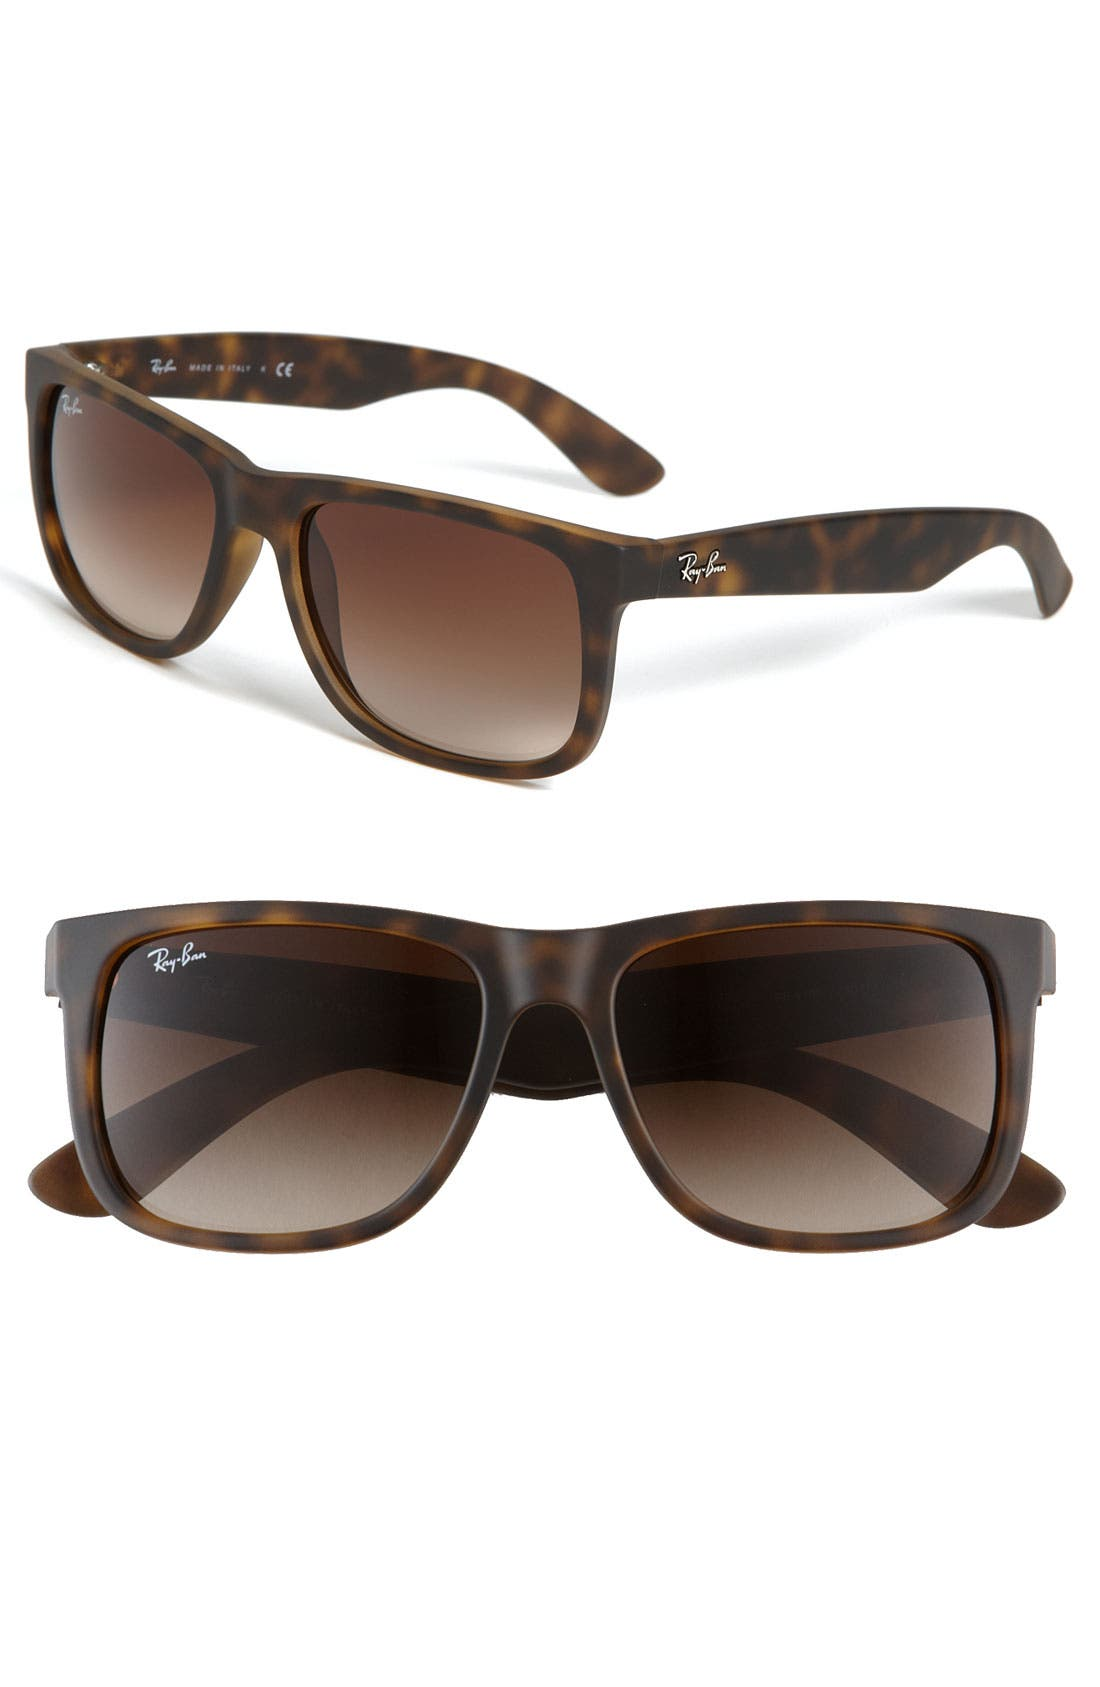 Main Image - Ray-Ban Youngster 54mm Sunglasses